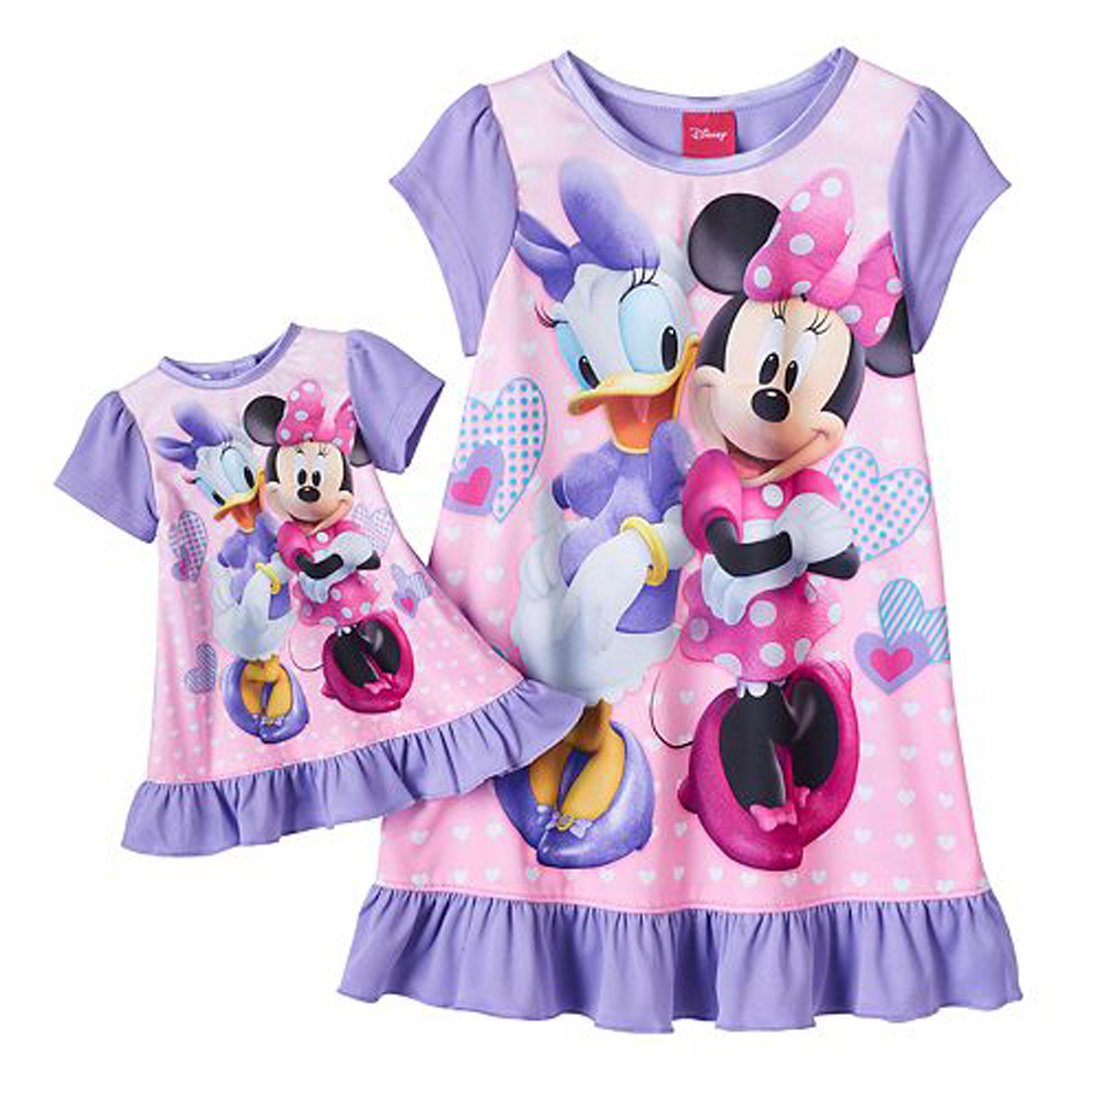 AME Disney Minnie Mouse & Daisy Little Girls Nightgown with Doll ...